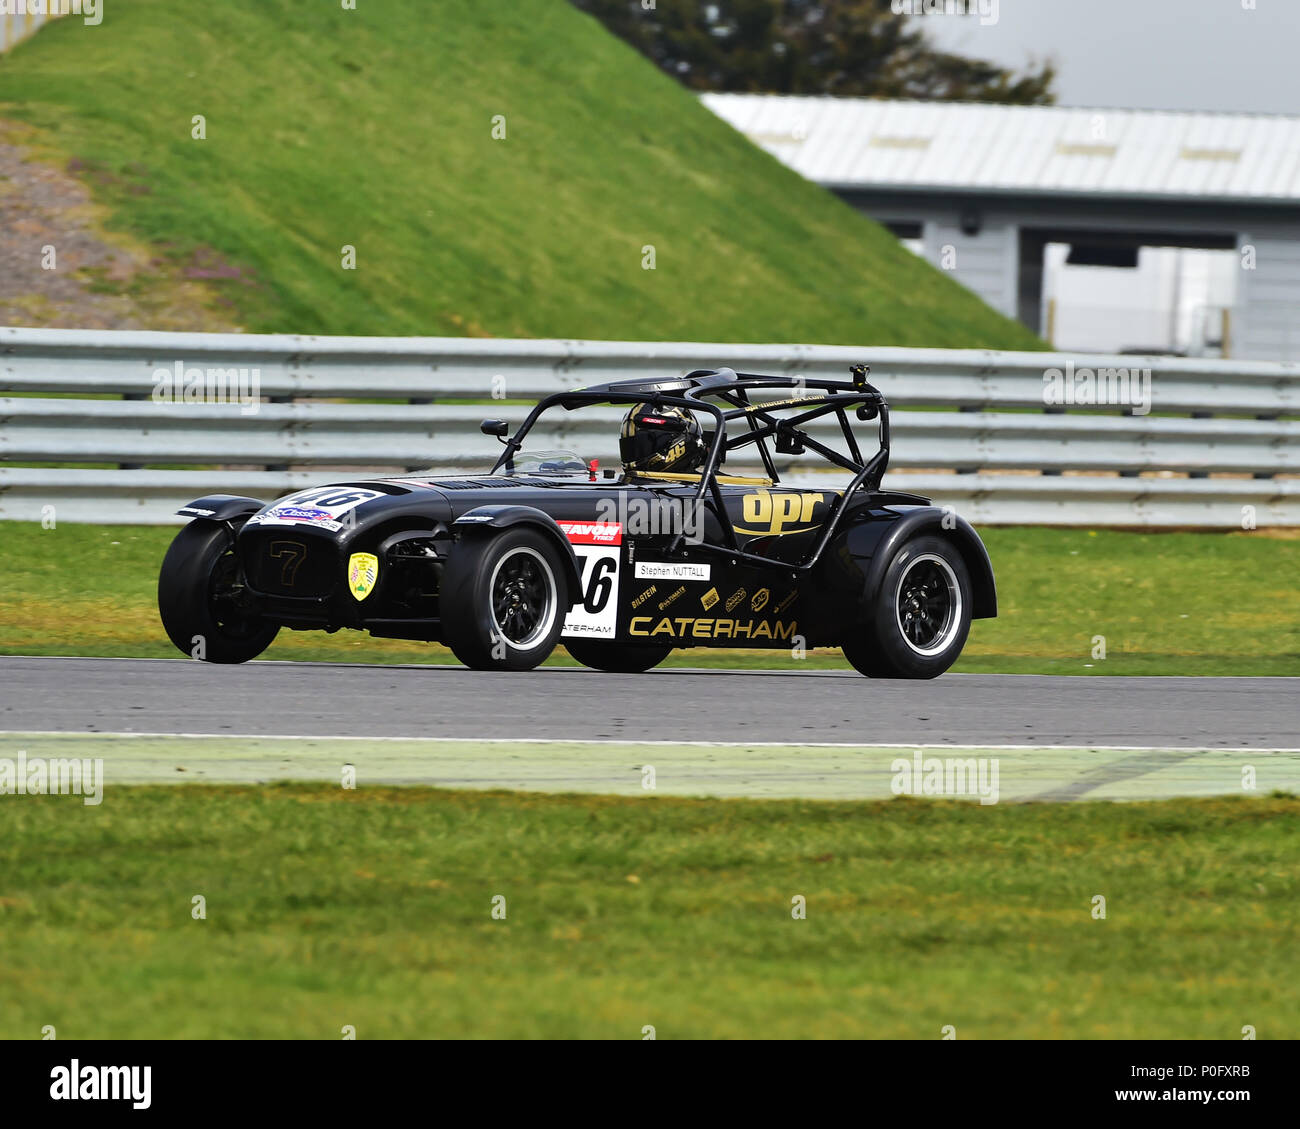 Stephen Nuttall, Caterham 420R, Gold Arts Magnificent Sevens, Snetterton Motor racing circuit, Snetterton, Norfolk, England, Saturday 7th April 2018.  Stock Photo